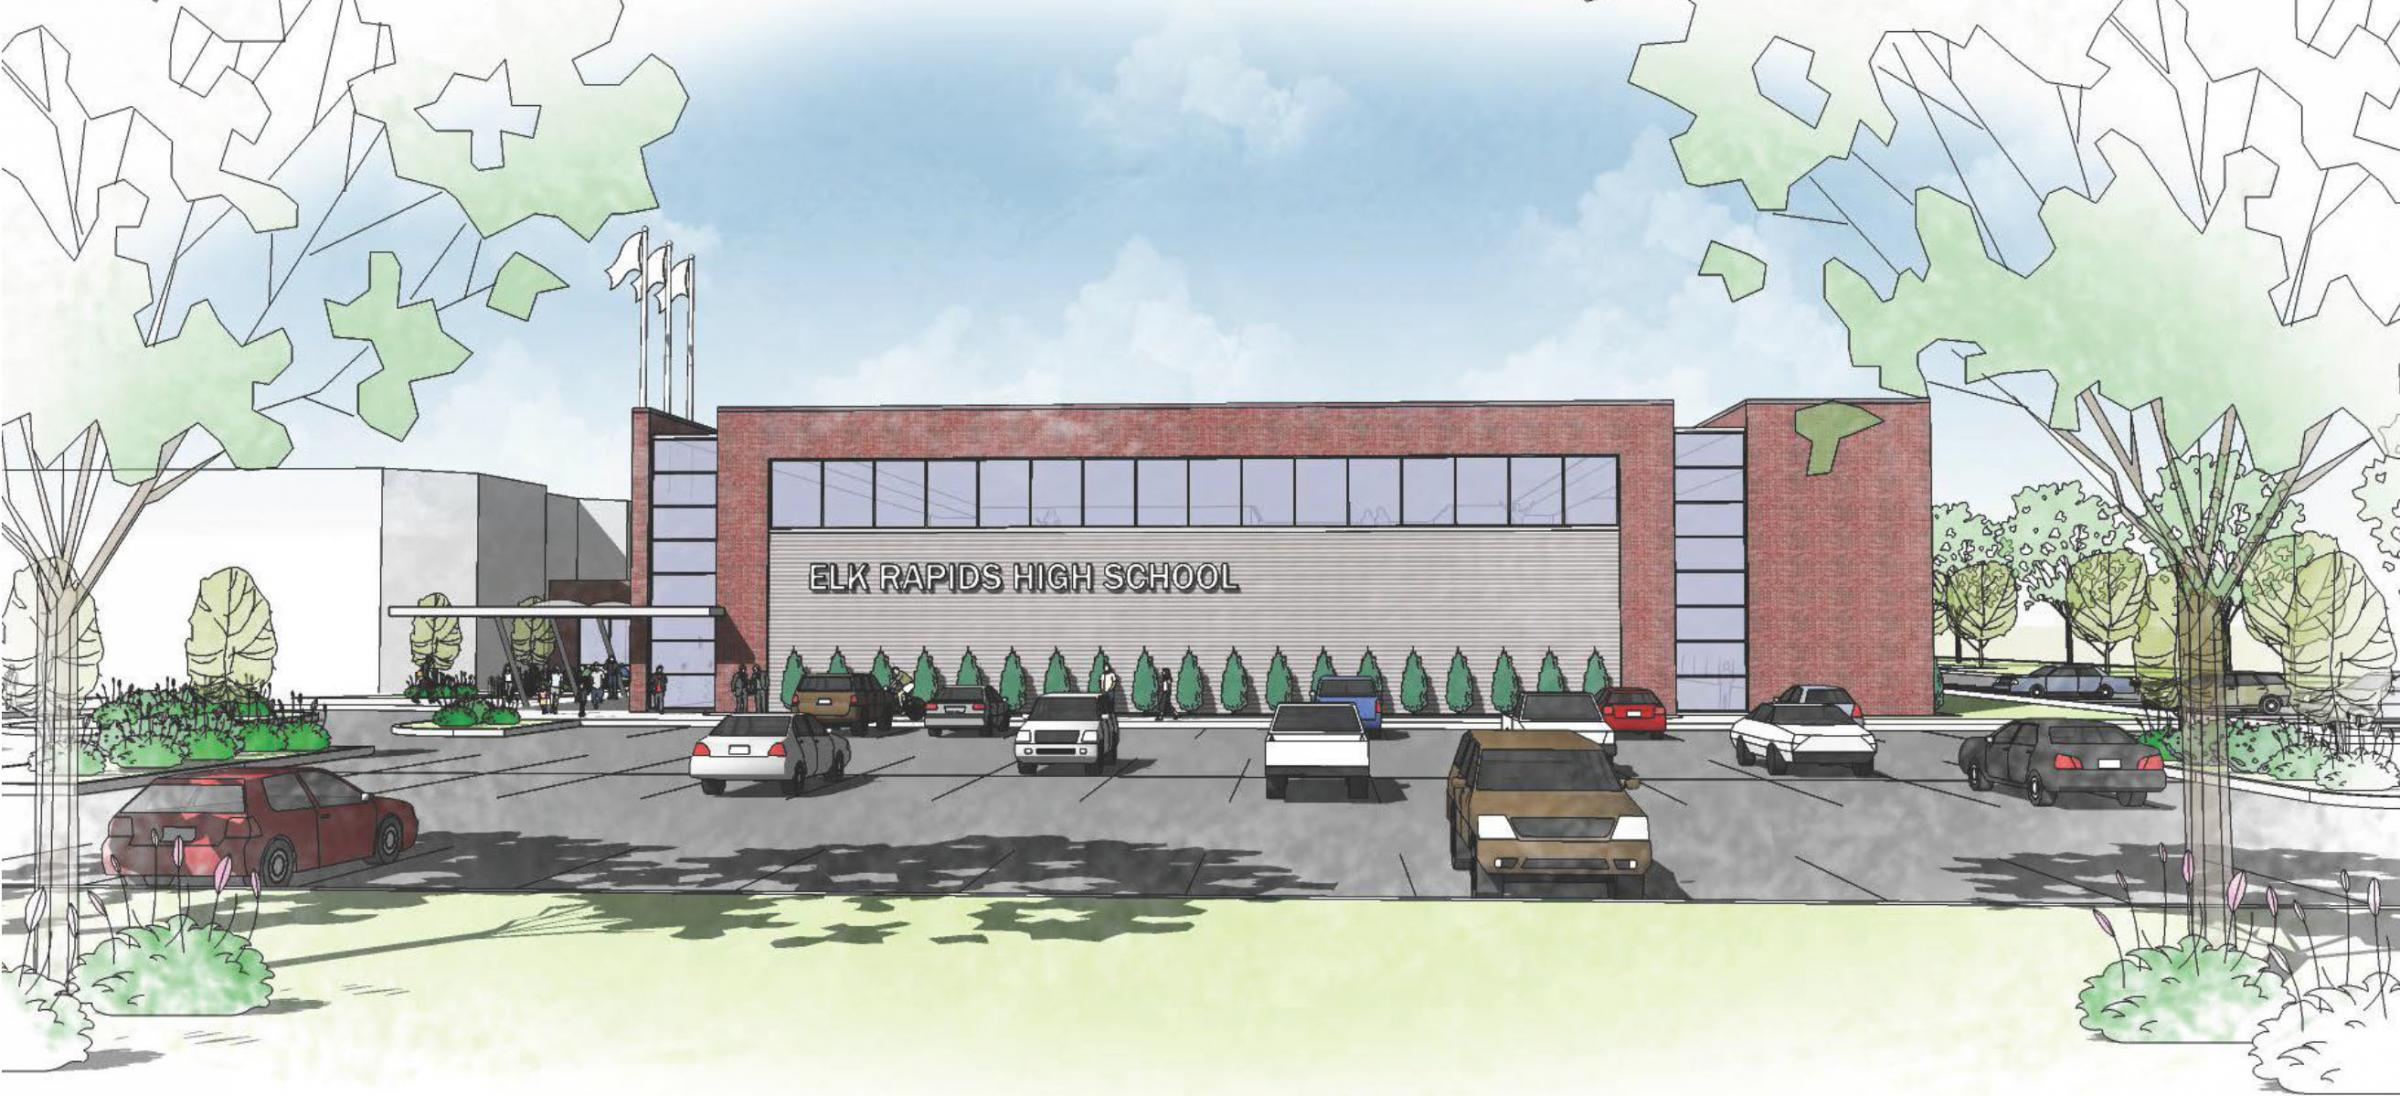 An Exterior Of The Potential New Gym And Main Entrance At Elk Rapids High  School. The Gym Is Part Of The $10.9 Million Bond On Next Weeku0027s Ballot.